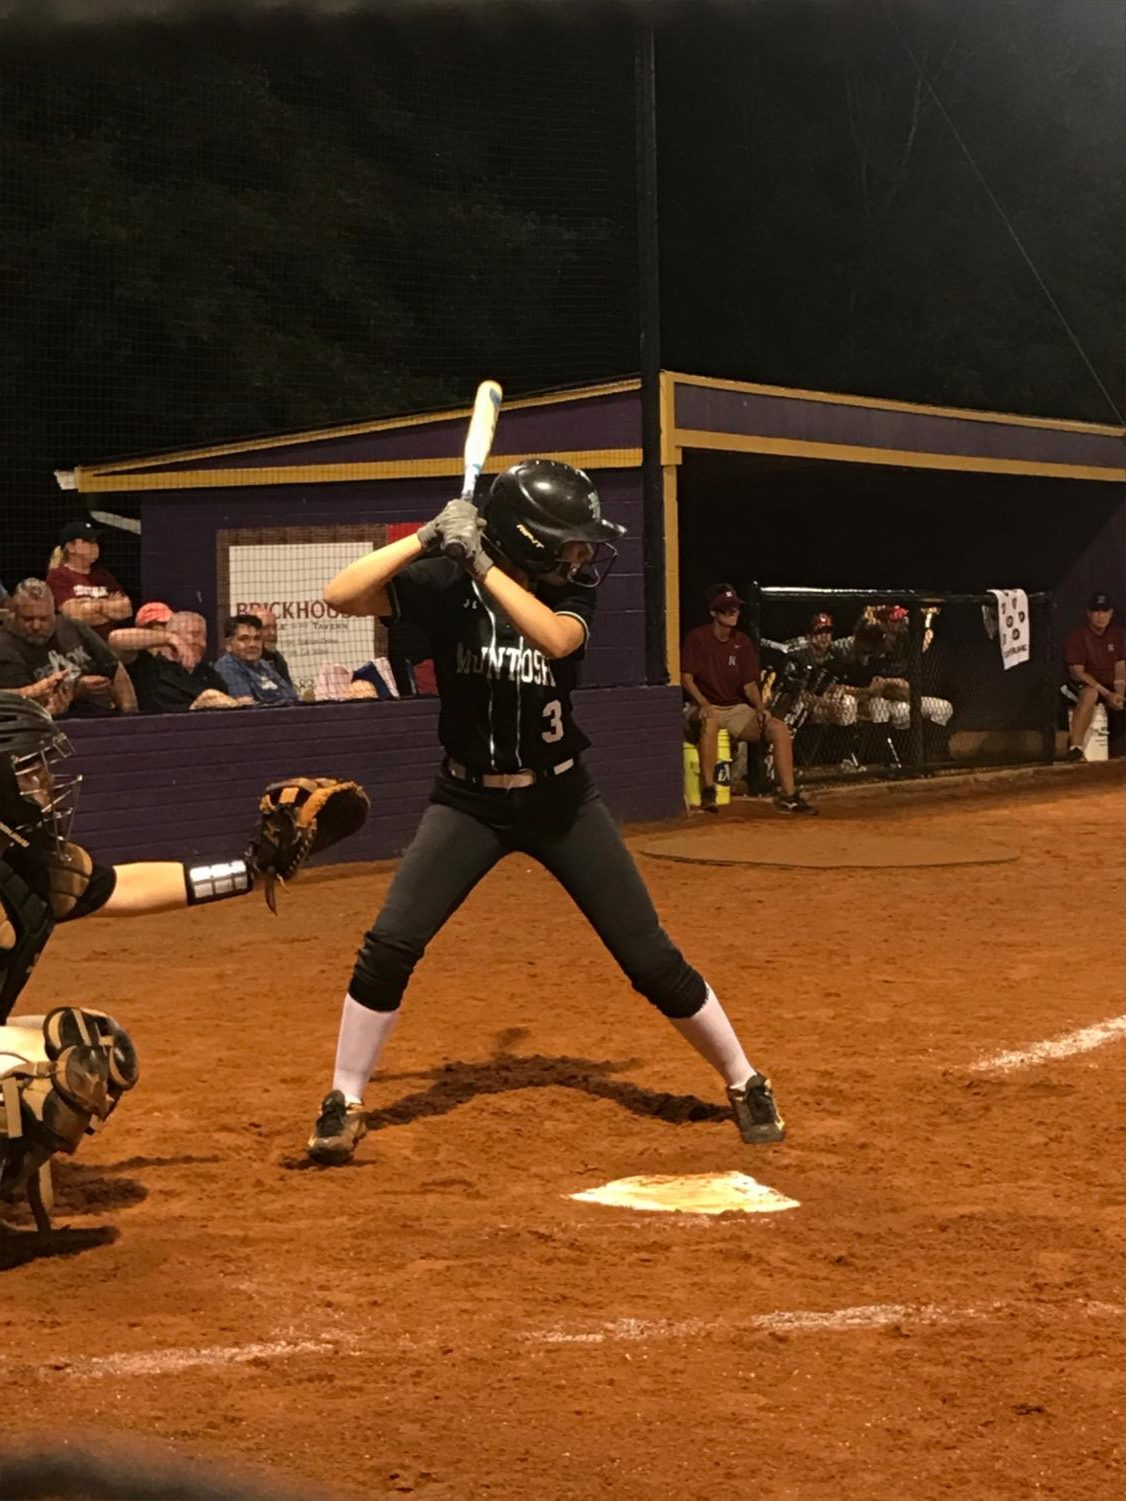 Abbey Terry comes up to bat against East Coweta early in the season.